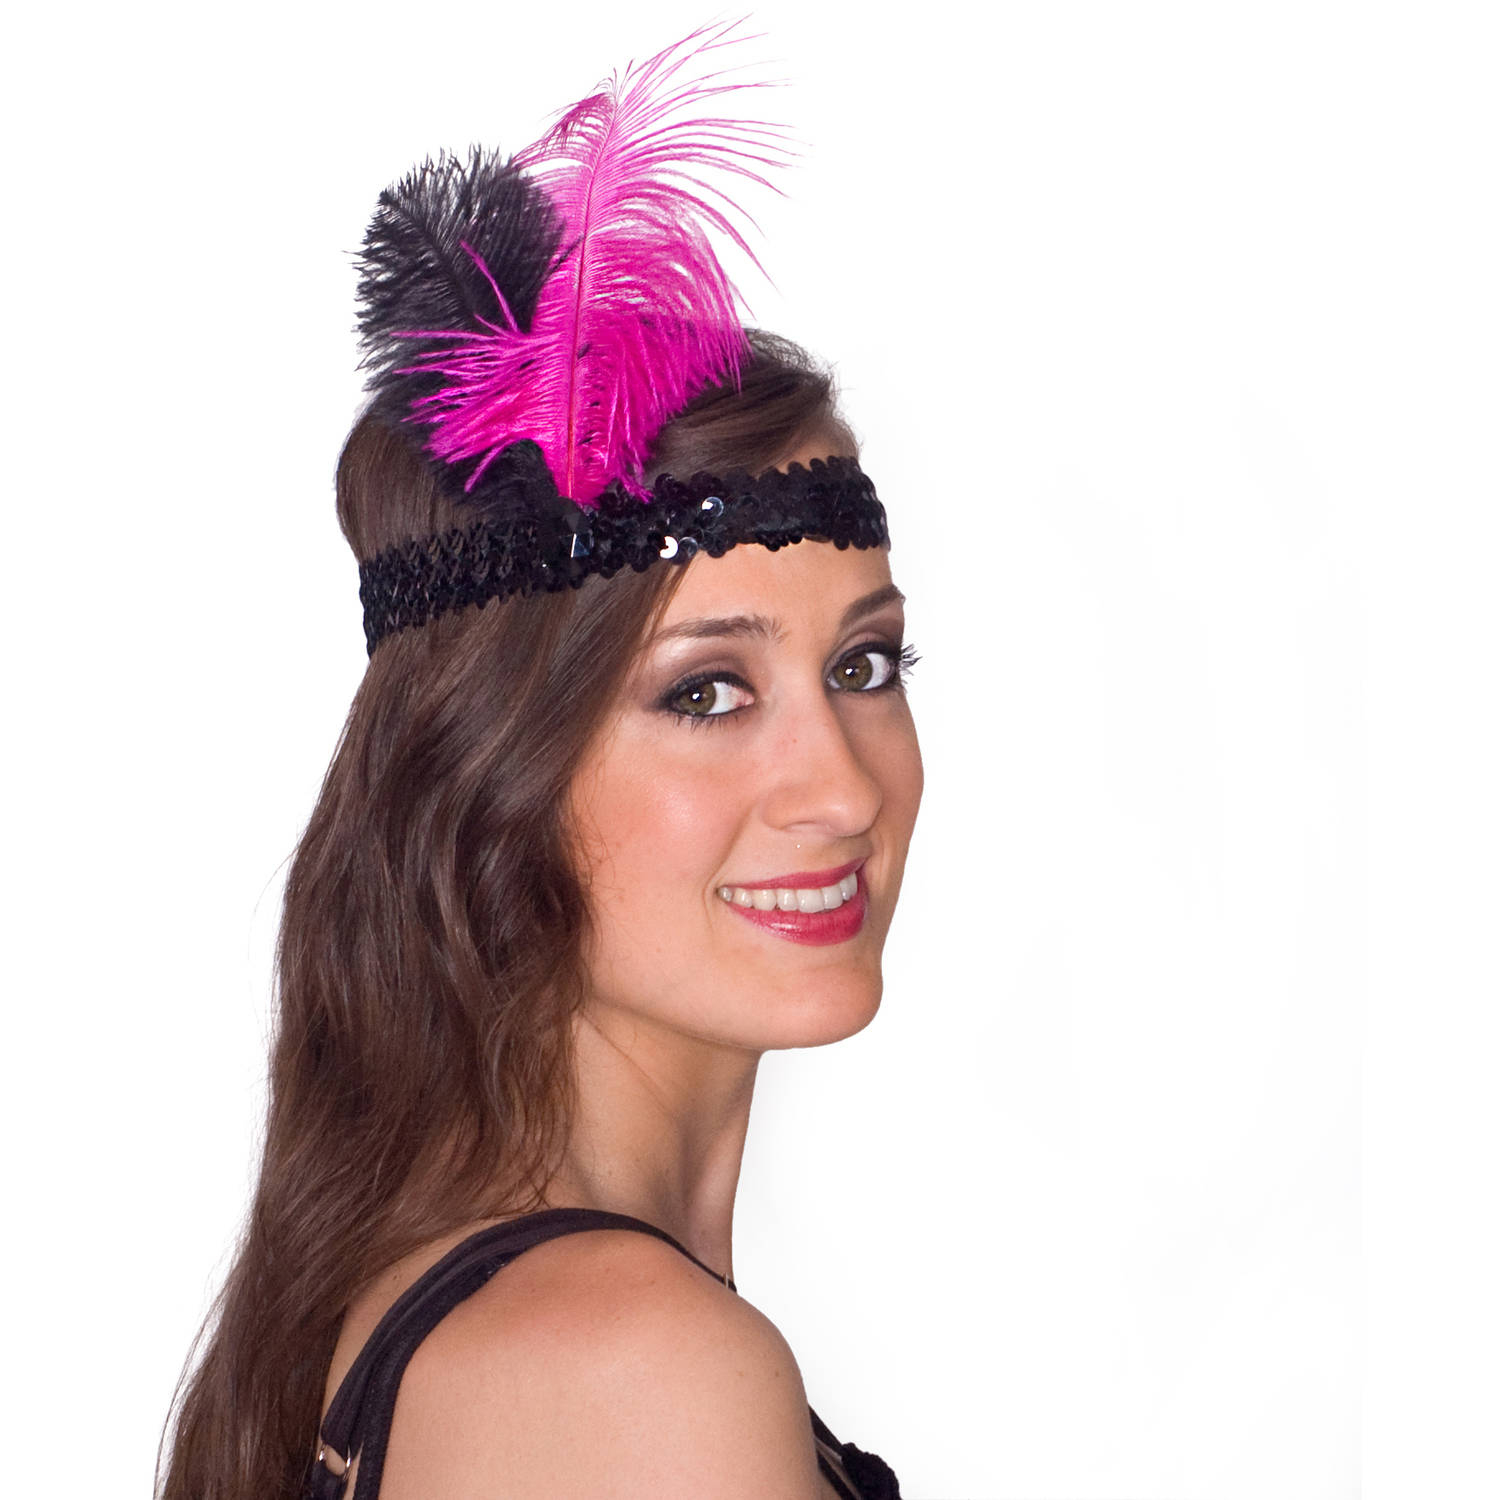 Sunnywood Pink and Black Flapper Headpiece